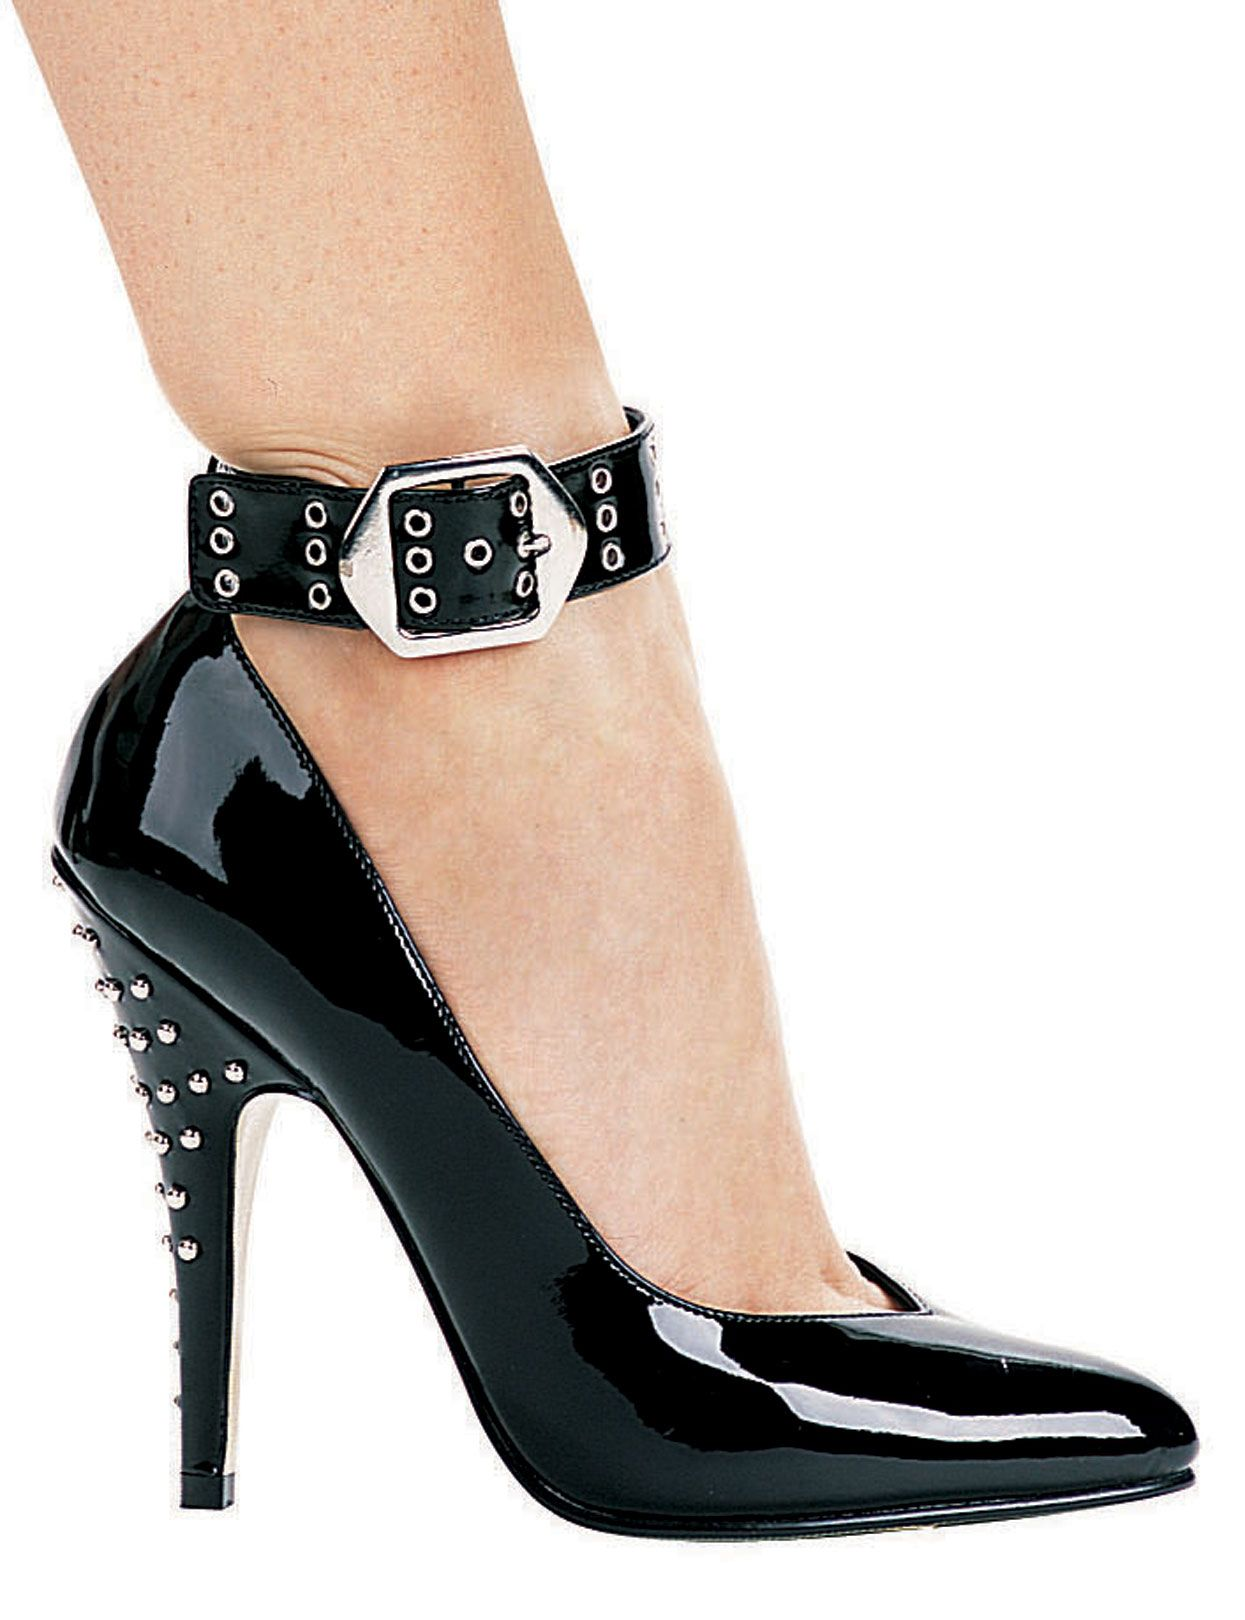 Studded Stiletto Heel Ankle Strap Pump 5 Inch Heel < Sexy Costumes